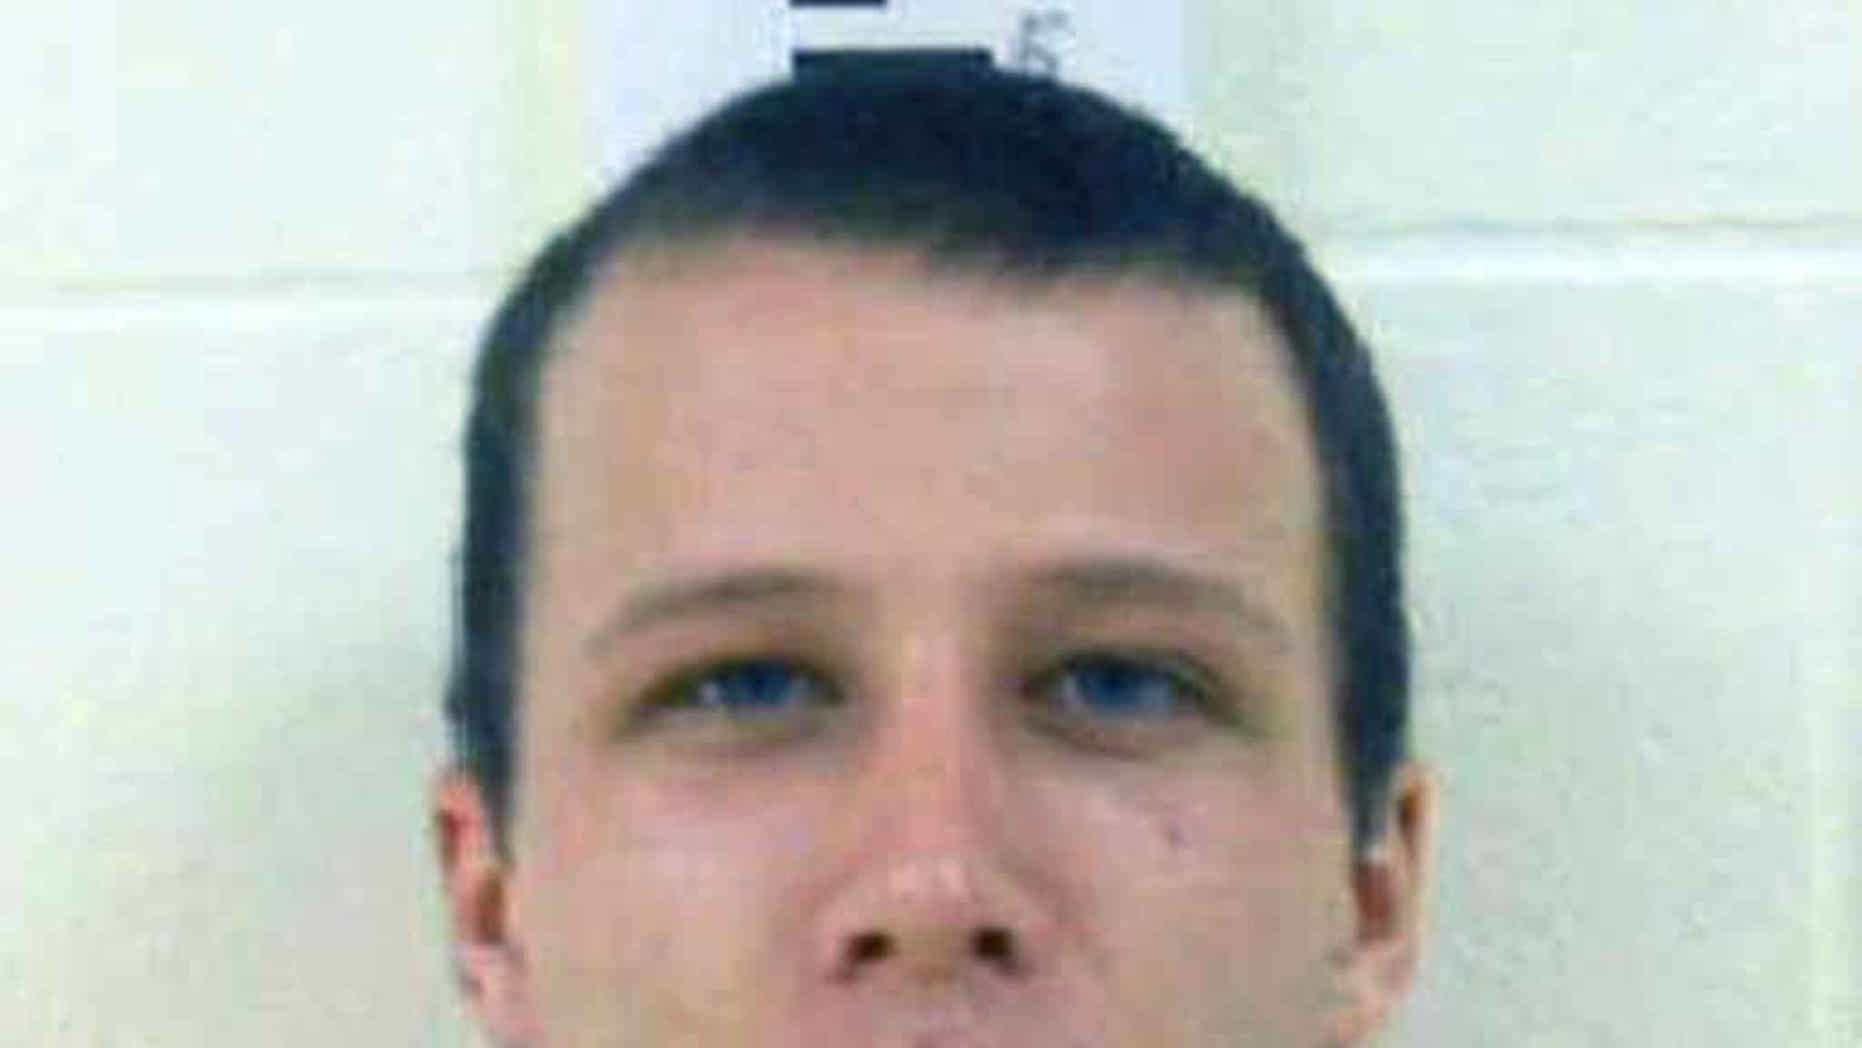 This 2012 booking photo released by the York County Sheriff's Department shows Derek Poulin, convicted in June 2015 of killing his grandmother Patricia Noel, by stabbing her dozens of times and setting her body afire. Poulin was sentenced to life in prison on Wednesday, July 29, 2015, in York County Superior Court in Alfred, Maine. (York County Sheriff's Department via AP)